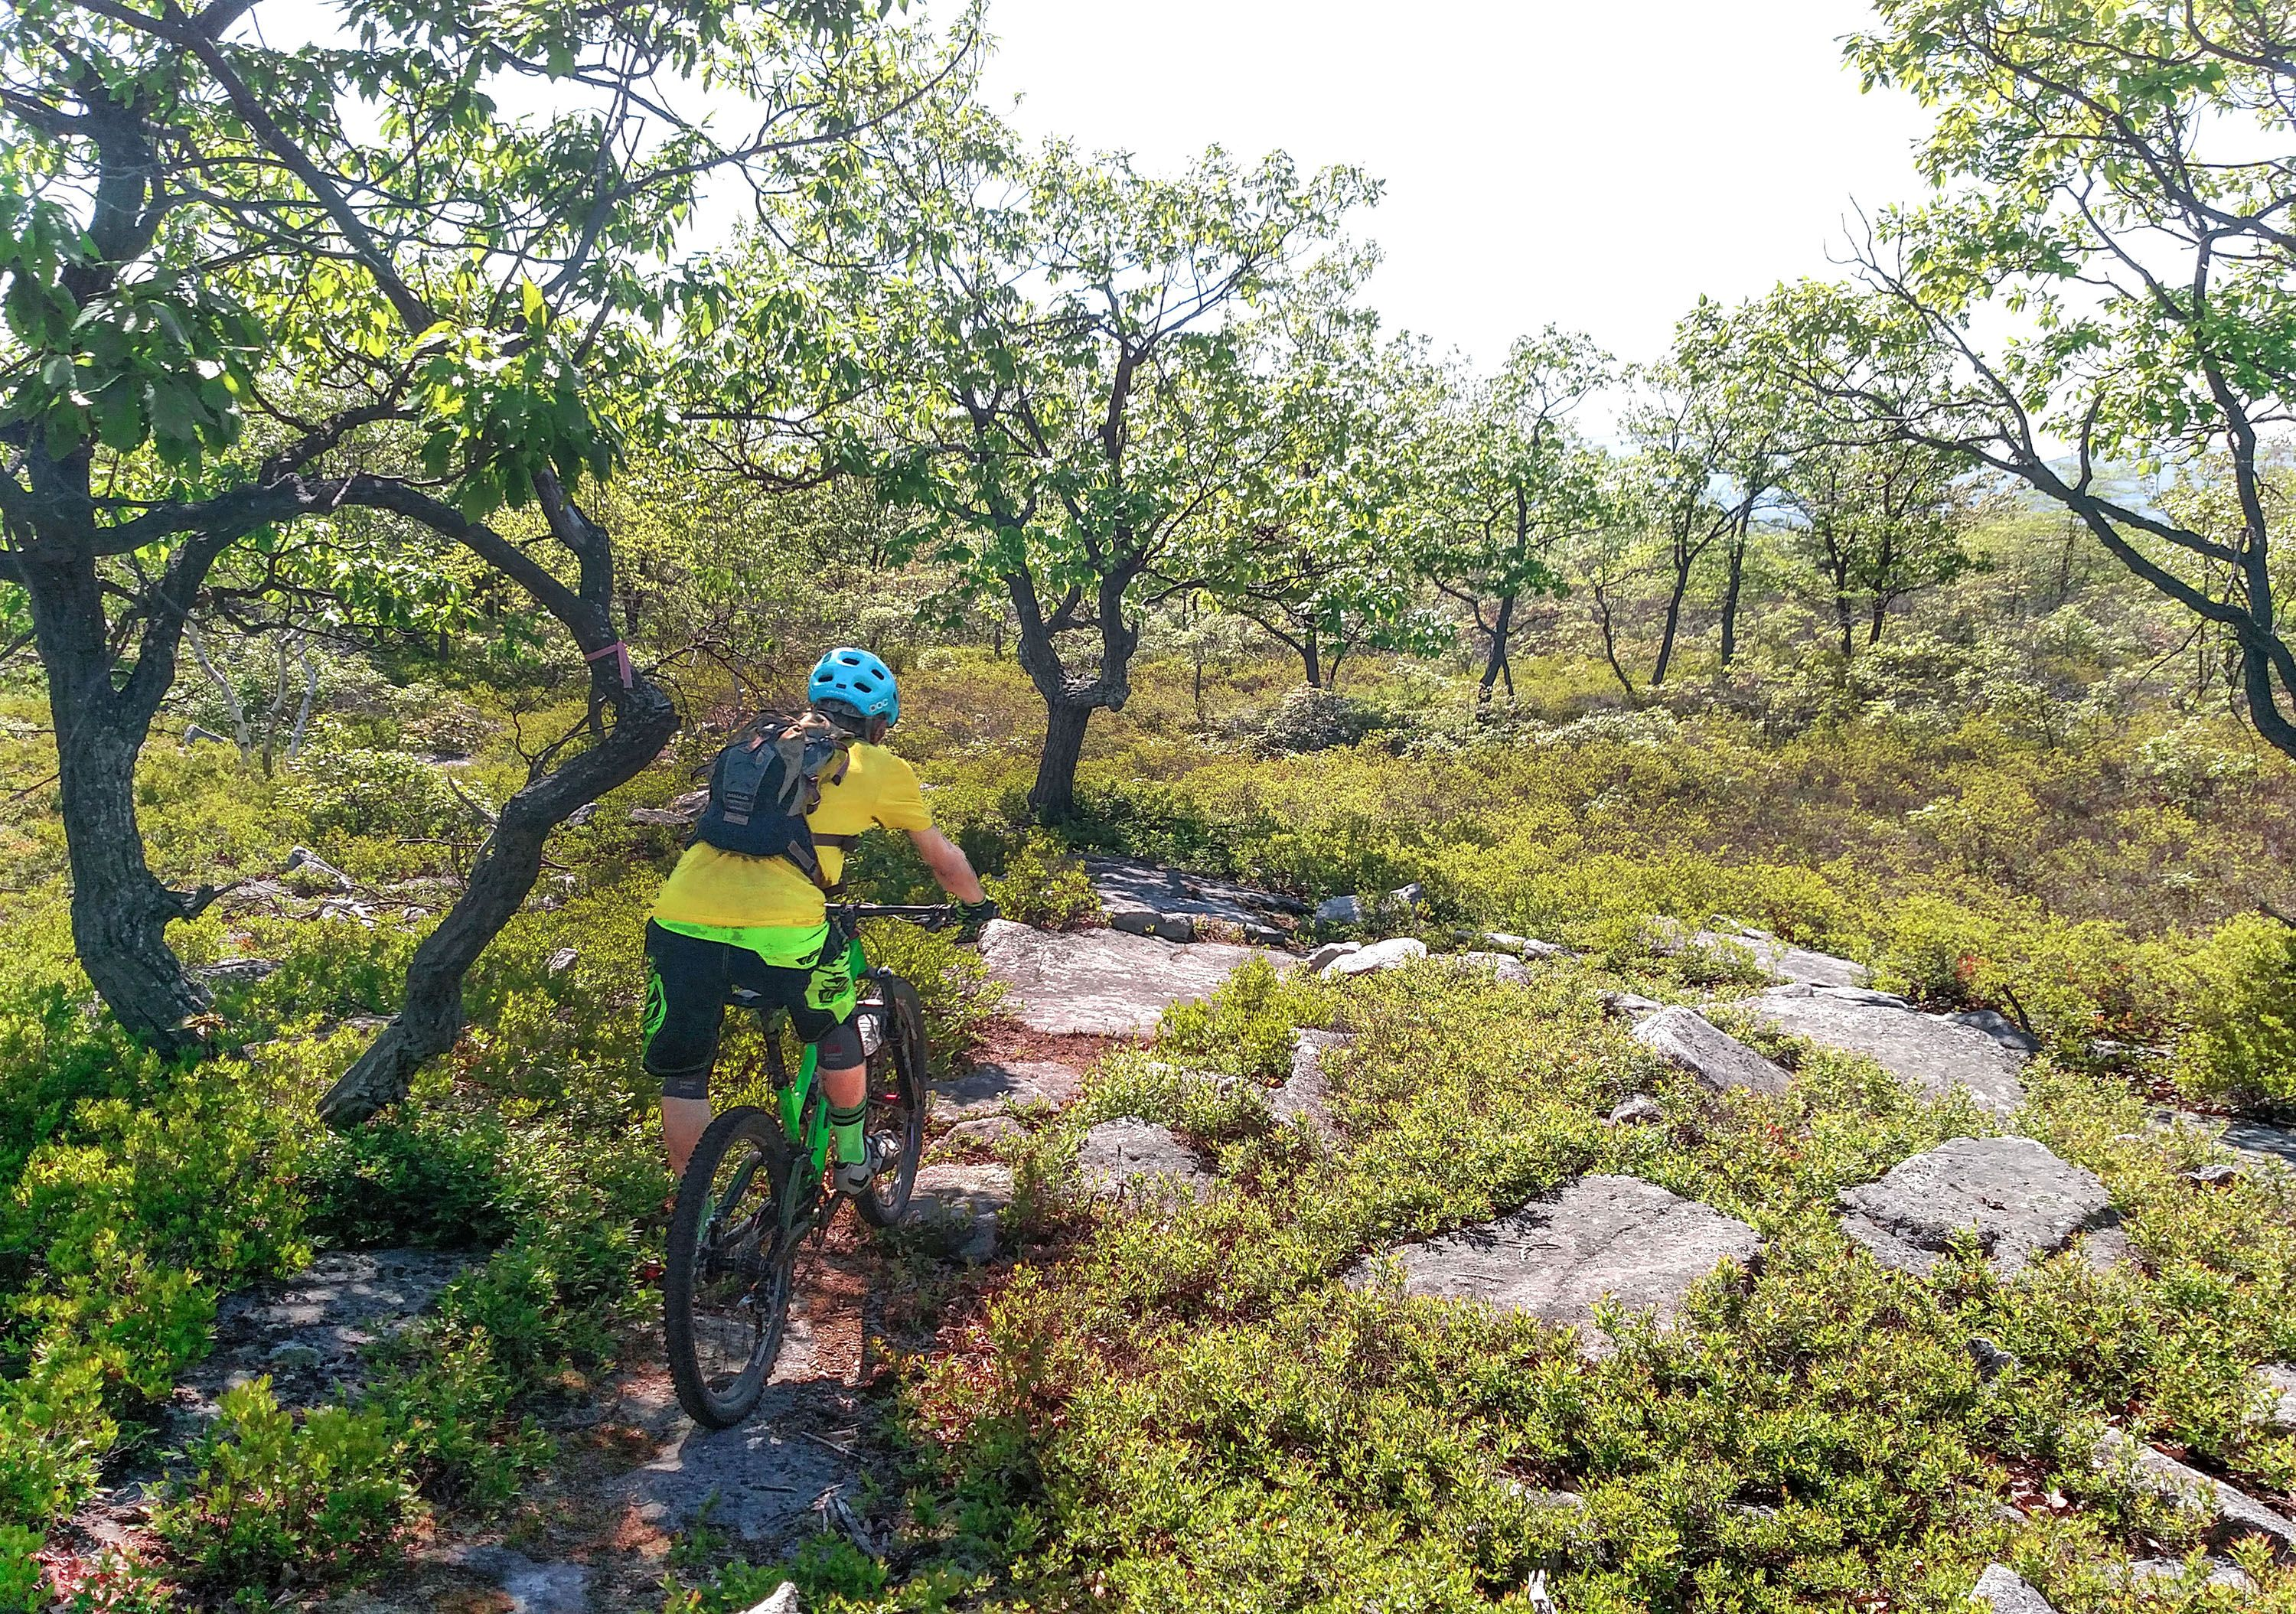 A person wearing a yellow shirt and blue helmet navigates a mountain bike over rocky terrain following a line of short trees.